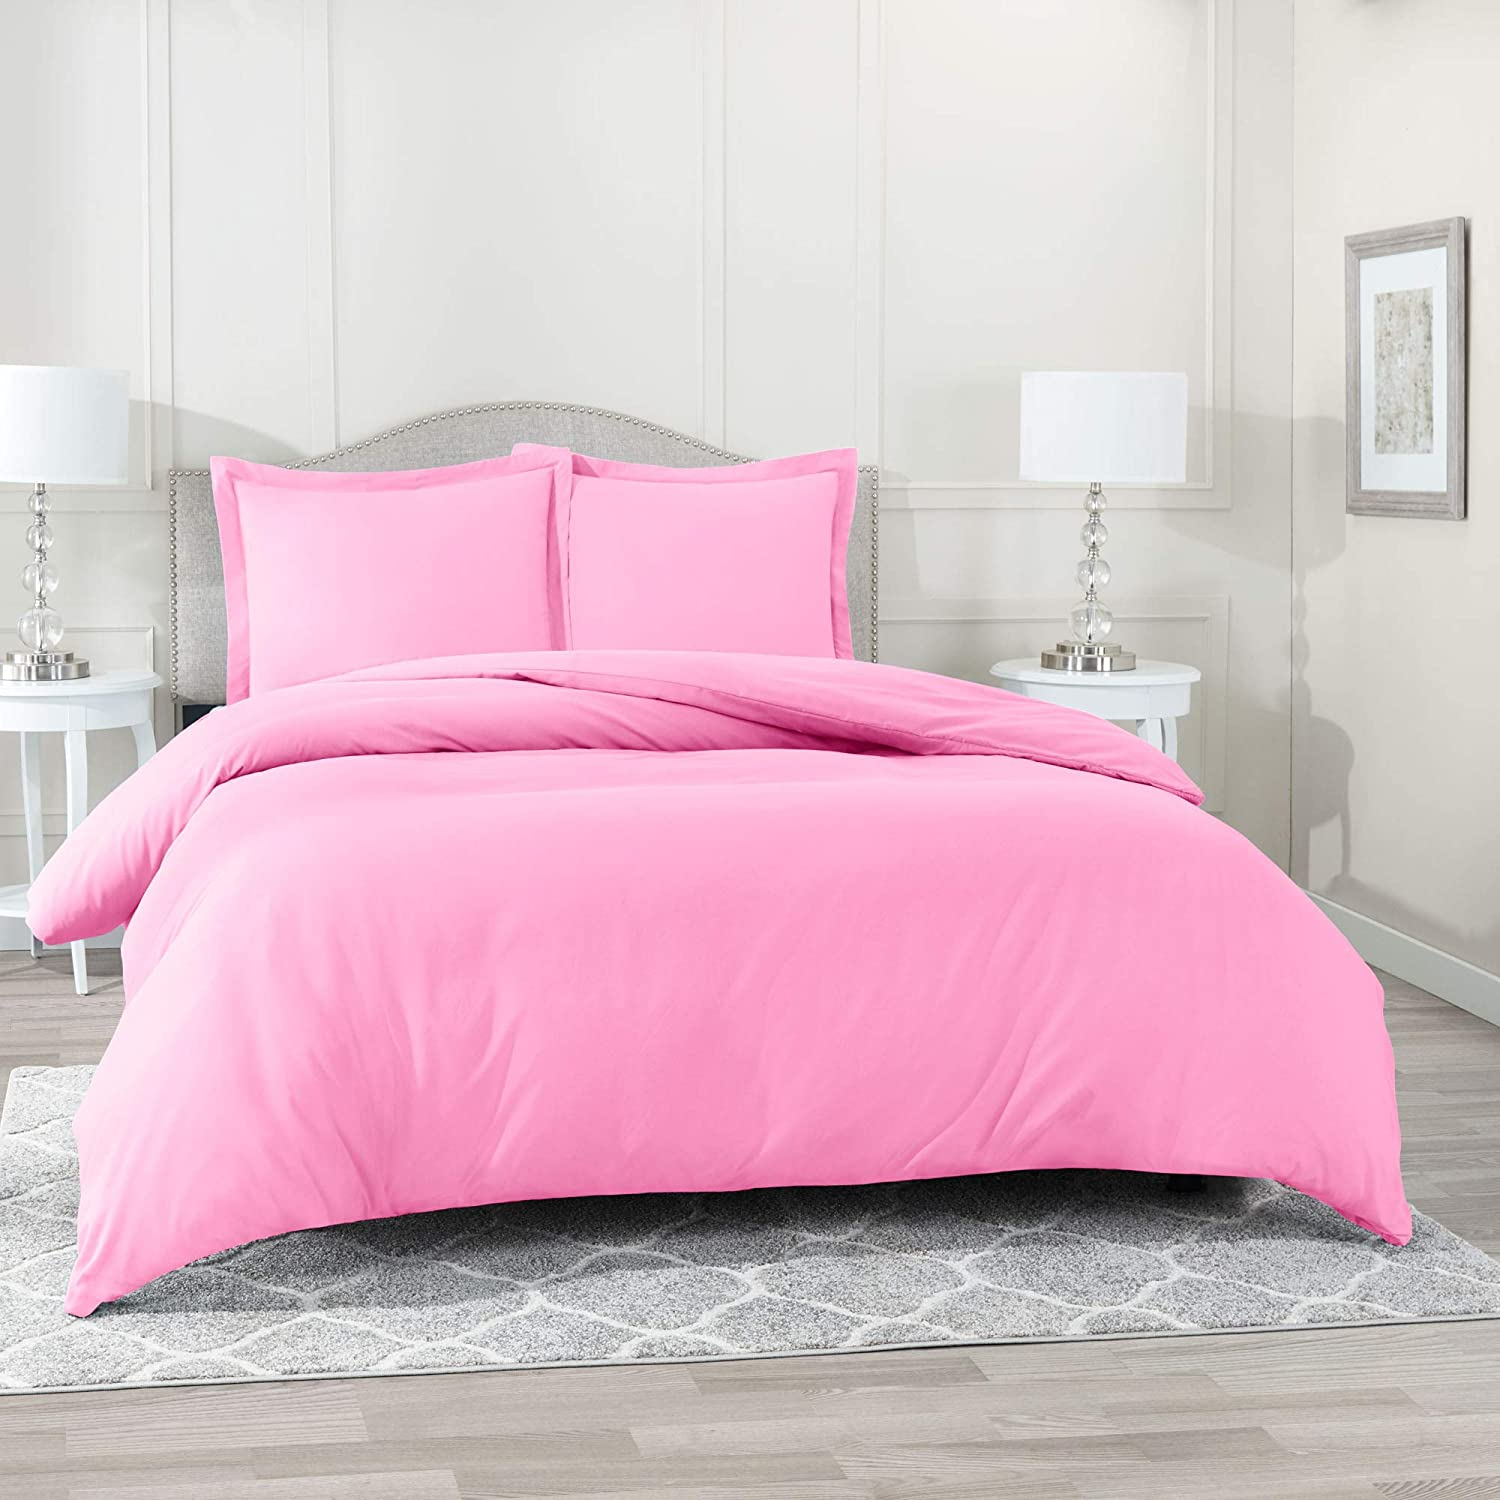 "Nestl Bedding Duvet Cover 3 Piece Set – Ultra Soft Double Brushed Microfiber Hotel Collection – Comforter Cover with Button Closure and 2 Pillow Shams, Light Pink - Queen 90""x90"""